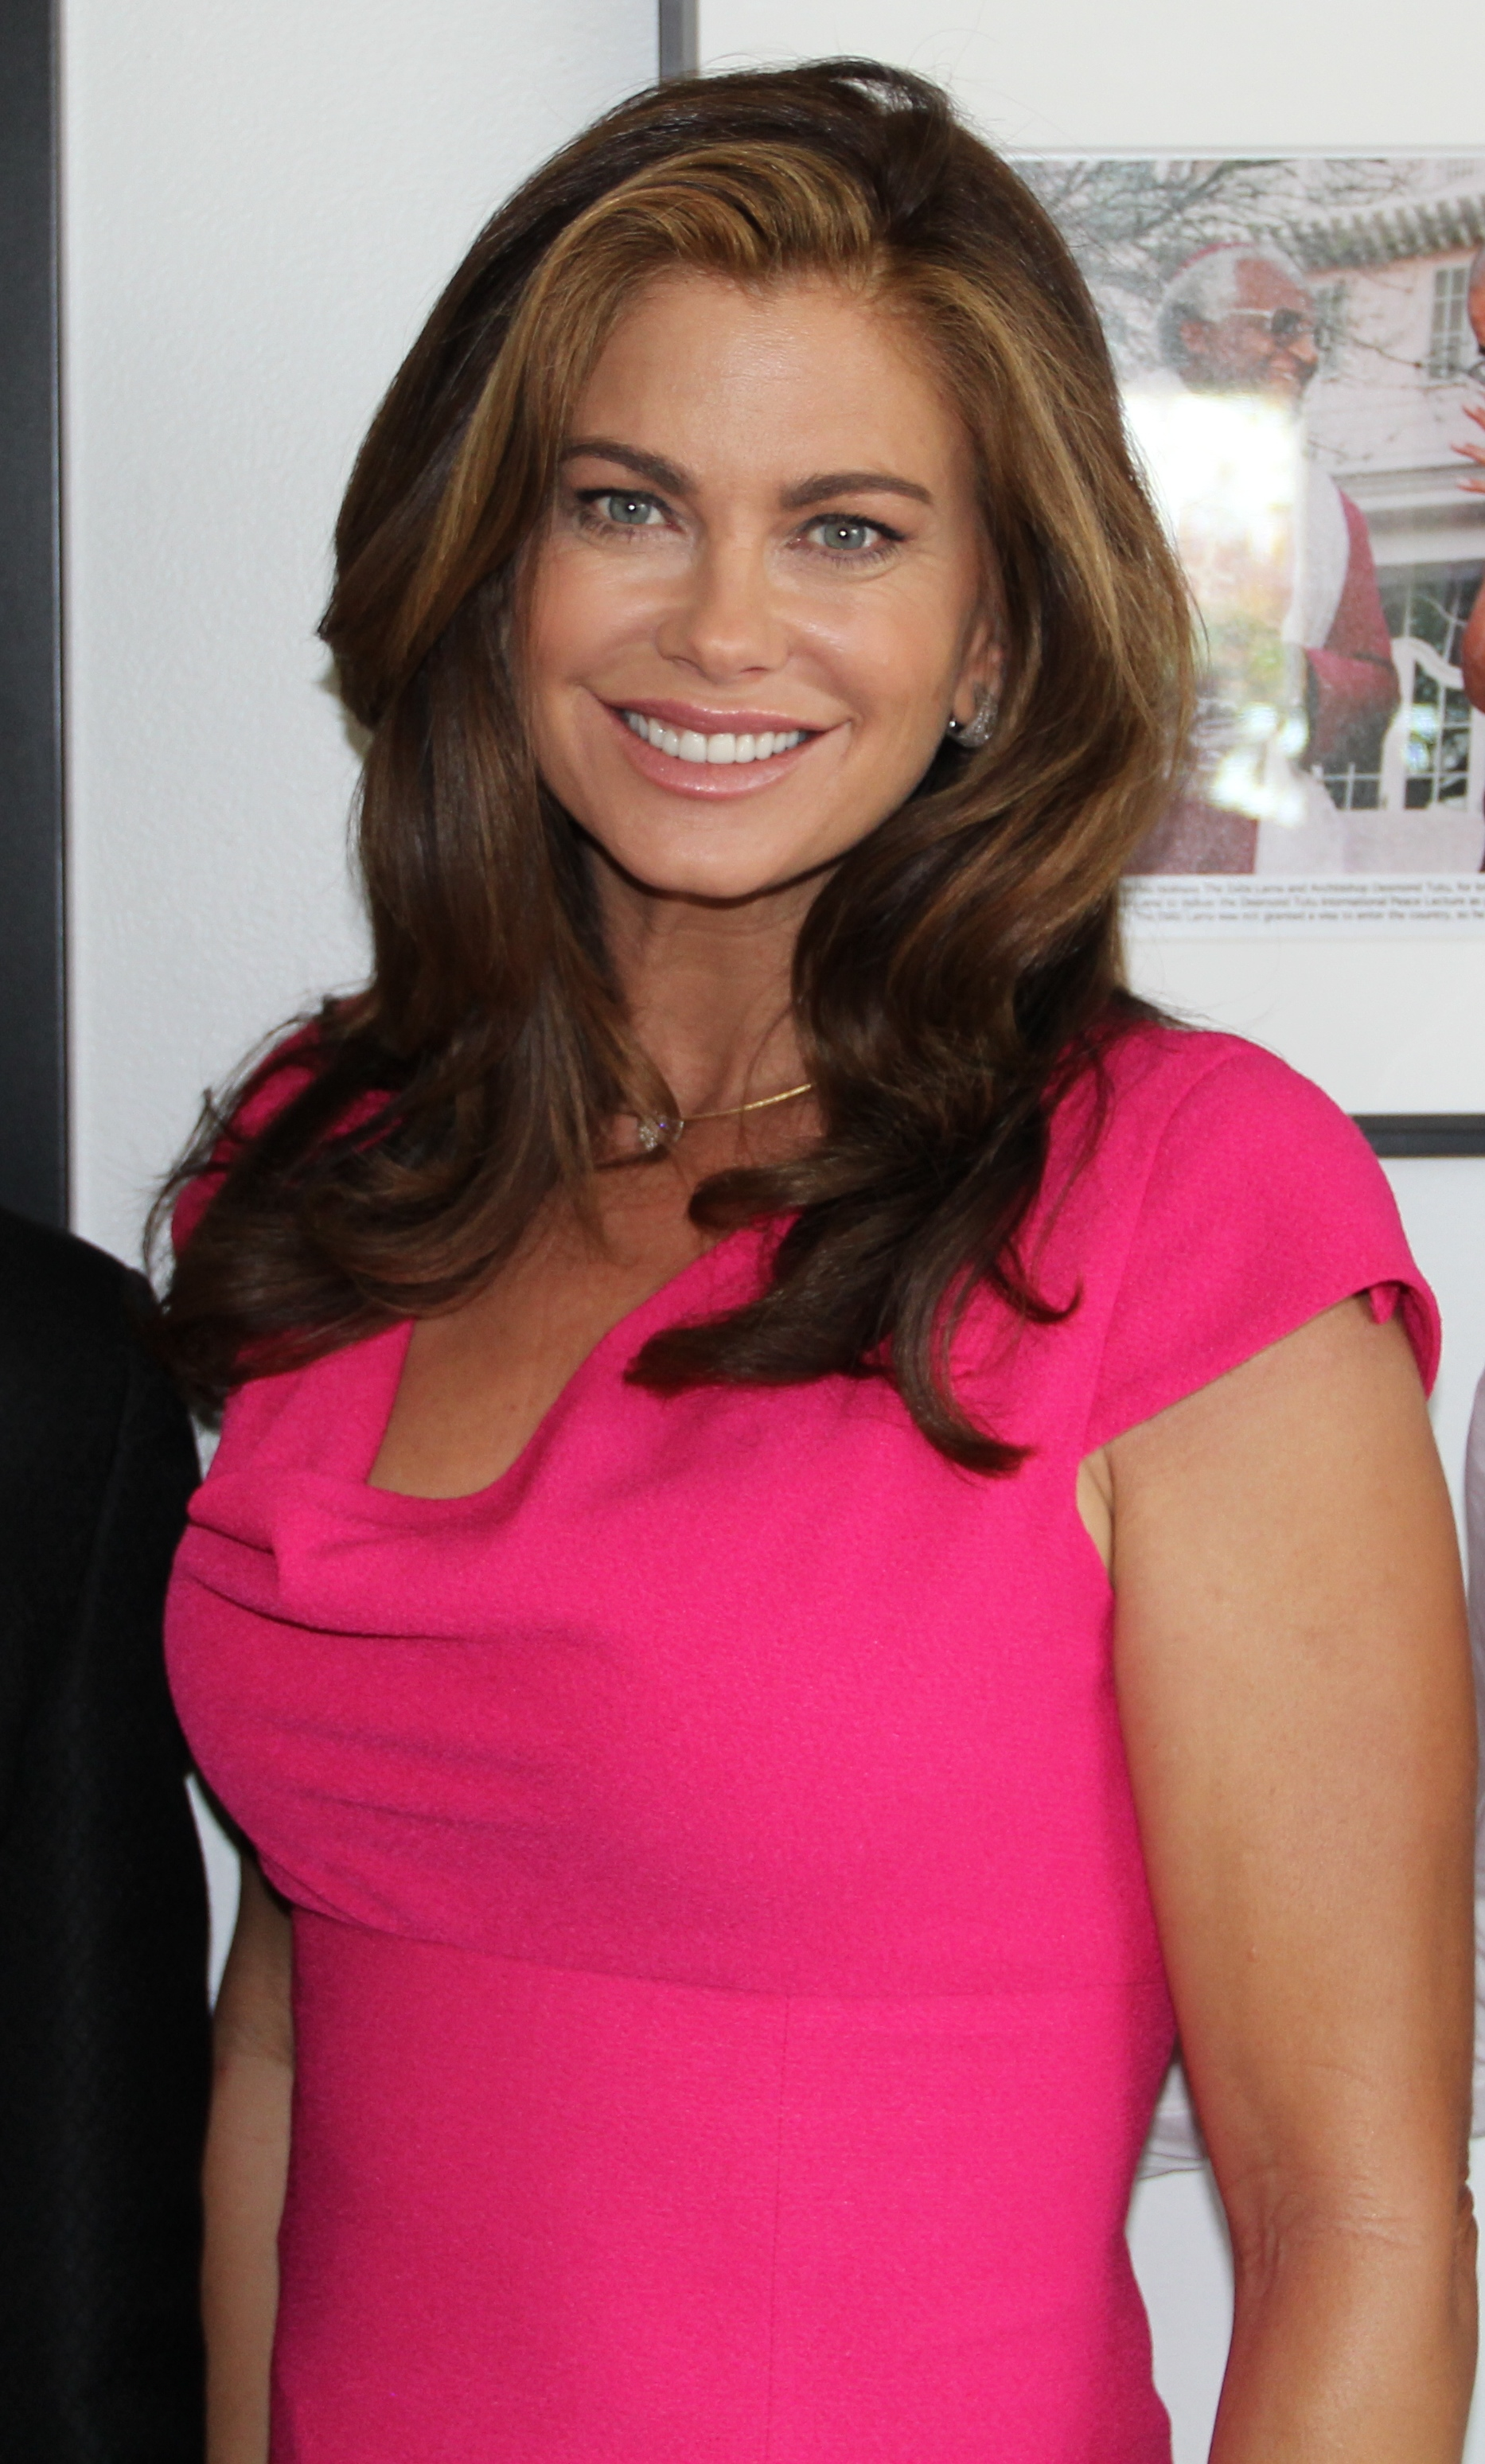 Photos Kathy Ireland nude (47 photos), Sexy, Bikini, Twitter, swimsuit 2015